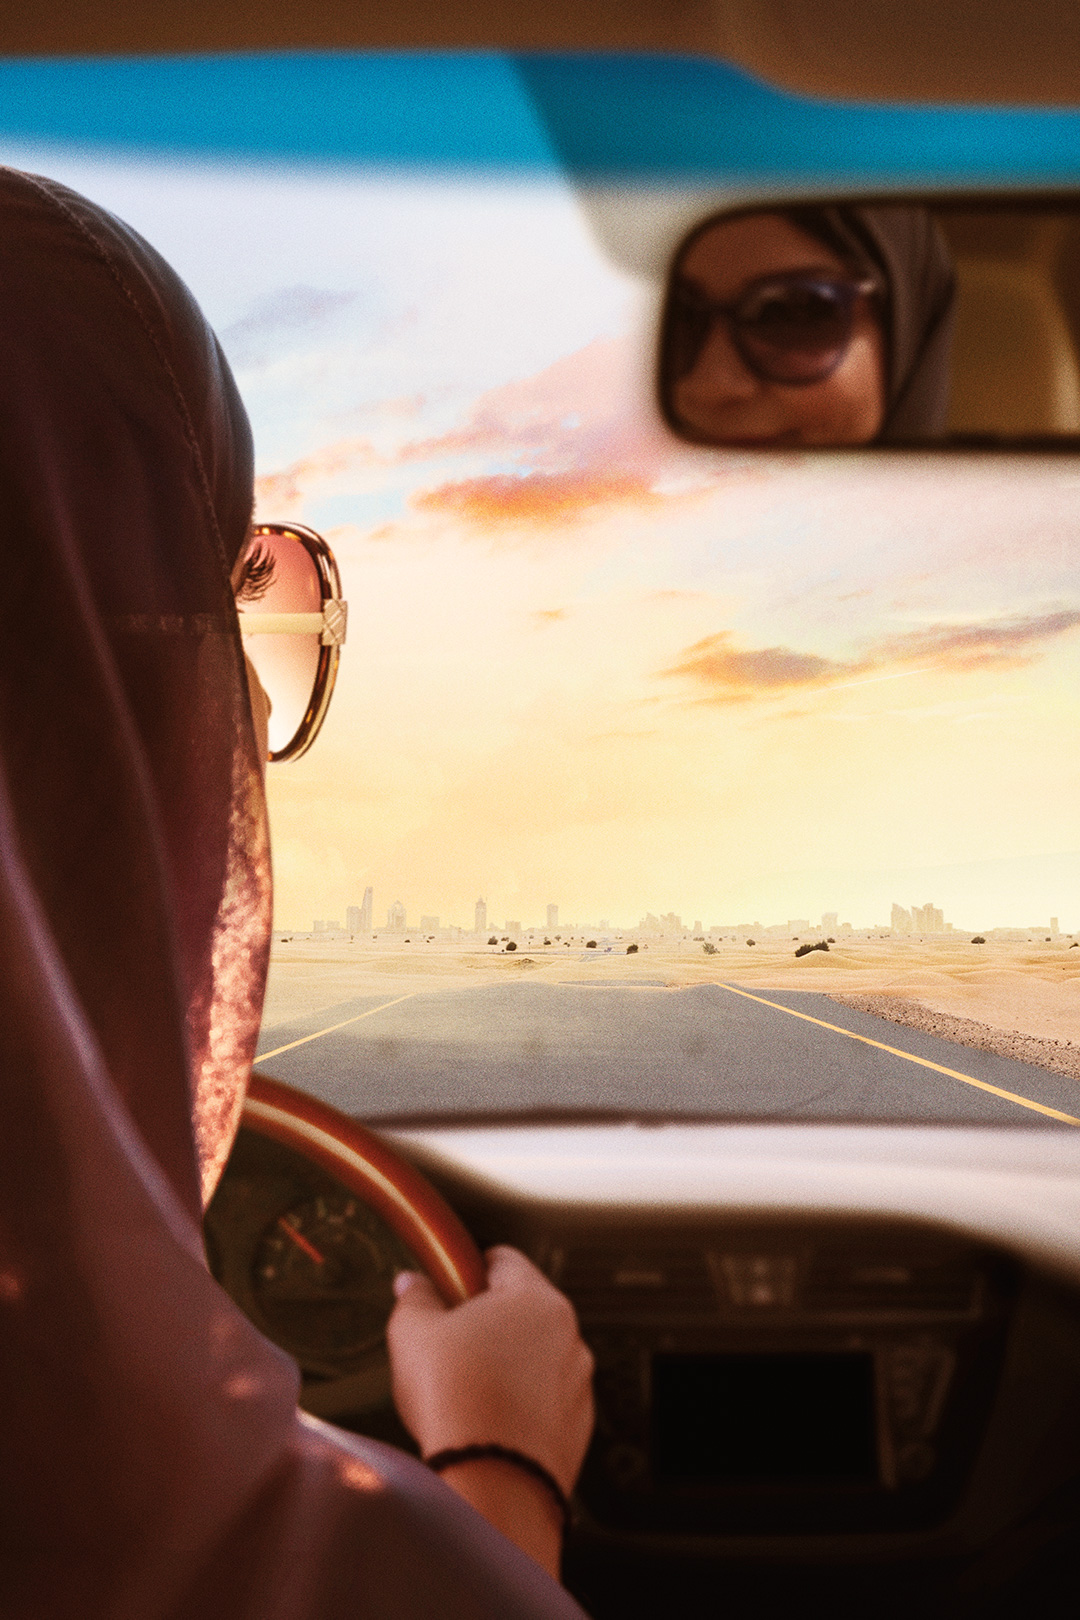 saudi-womens-driving-school-ka-1080.jpg